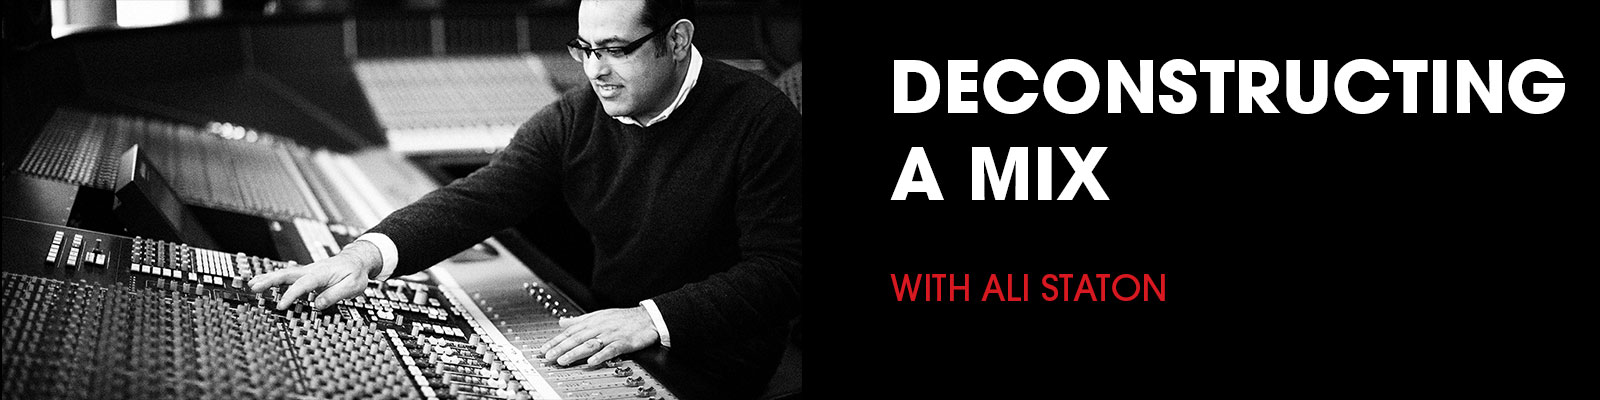 DECONSTRUCTING A MIX WITH ALI STATON